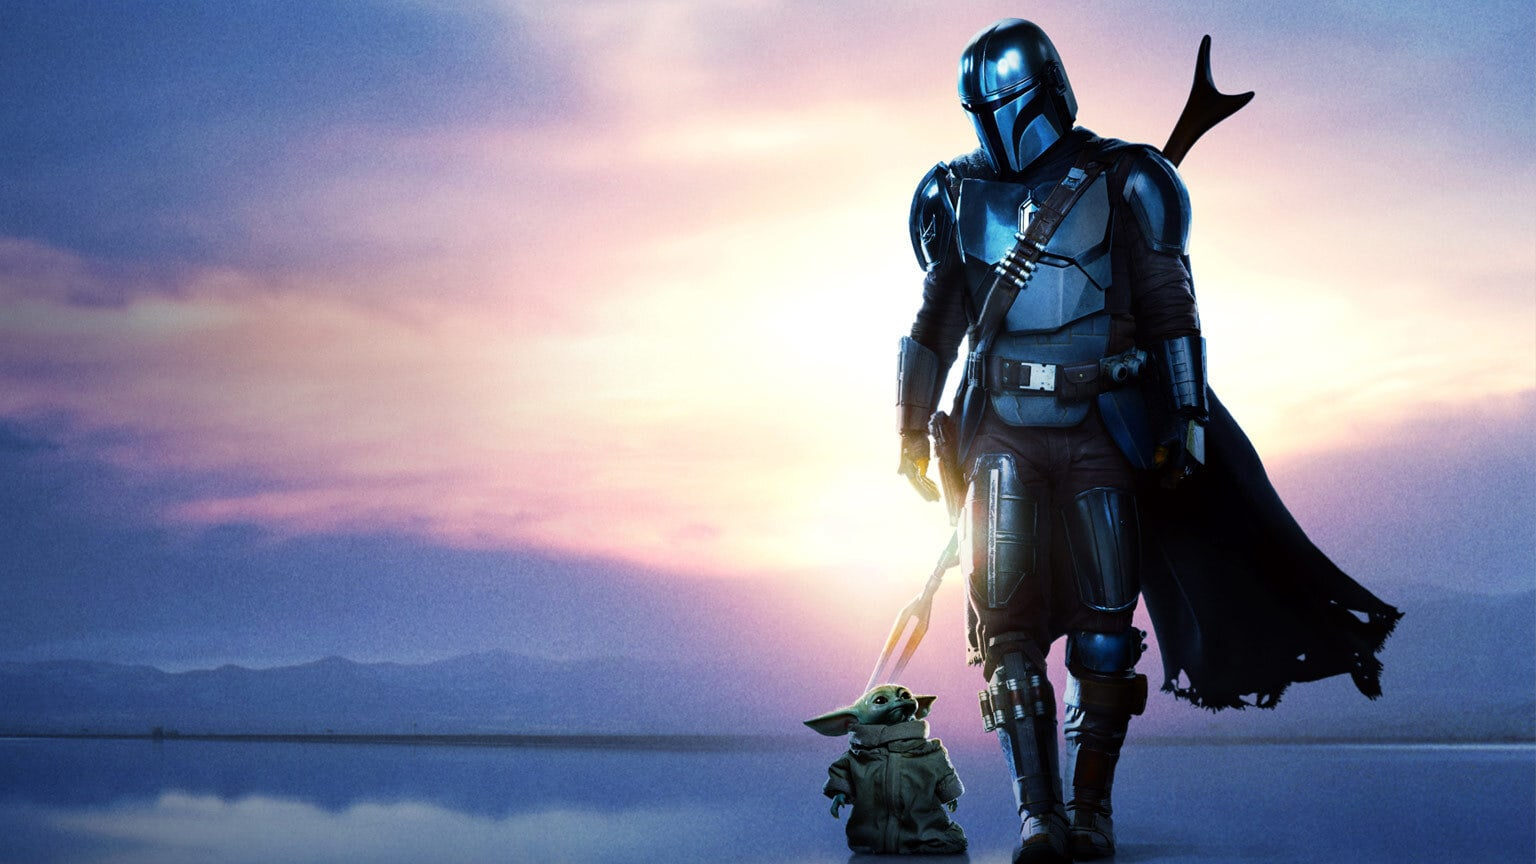 Join Jon Favreau On the Virtual Red Carpet to Celebrate Season 2 of The Mandalorian